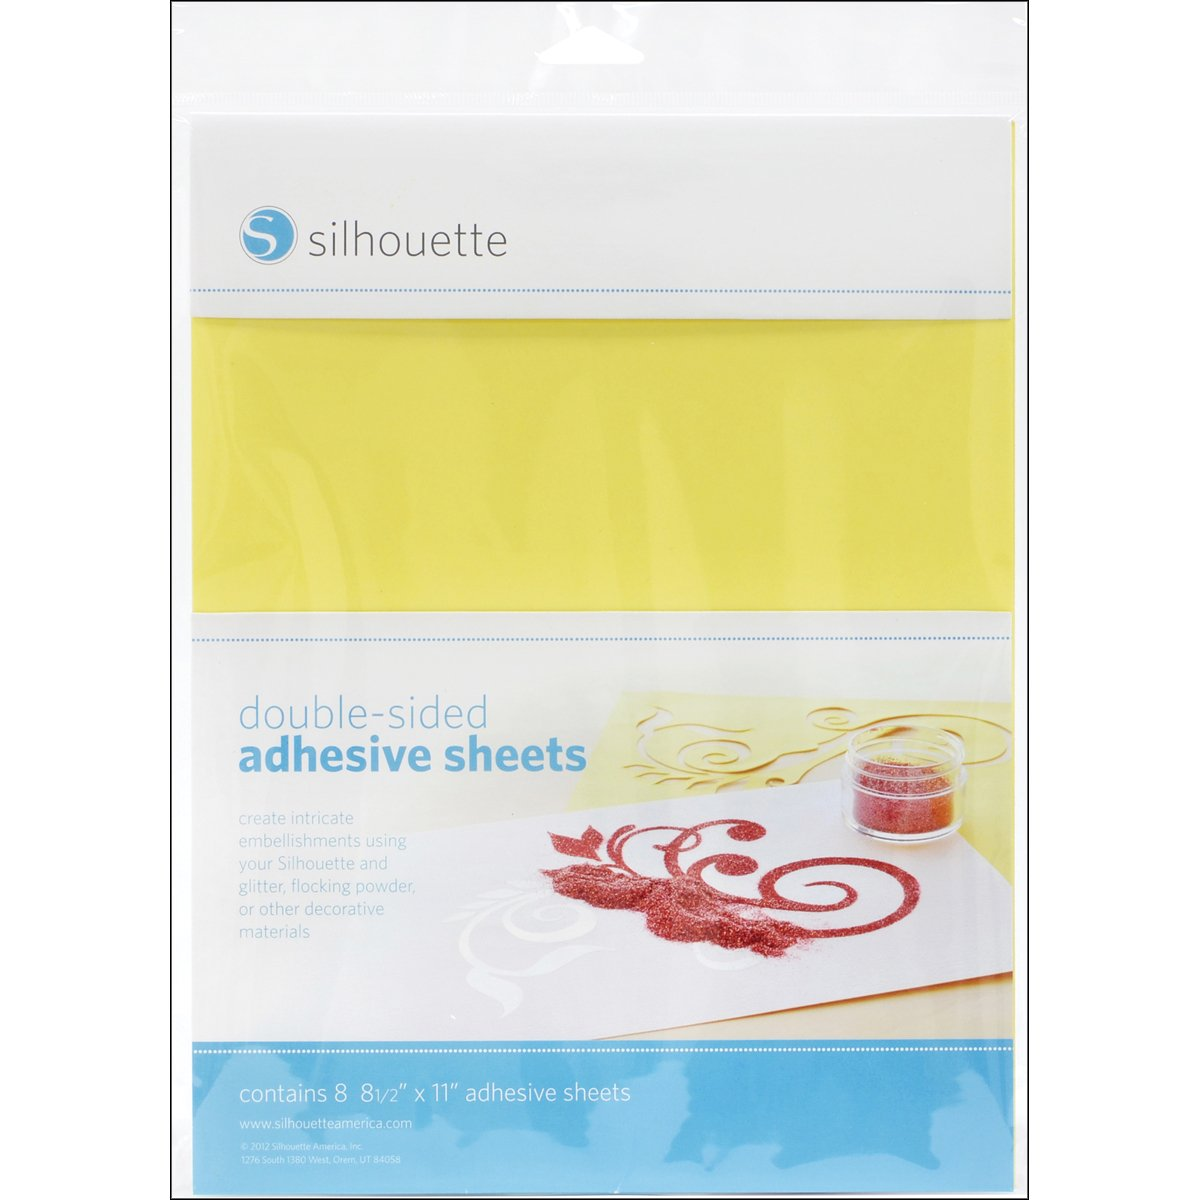 Silhouette Double-Sided Adhesive Paper Silhouette America Inc. MEDIA-ADHESIVE